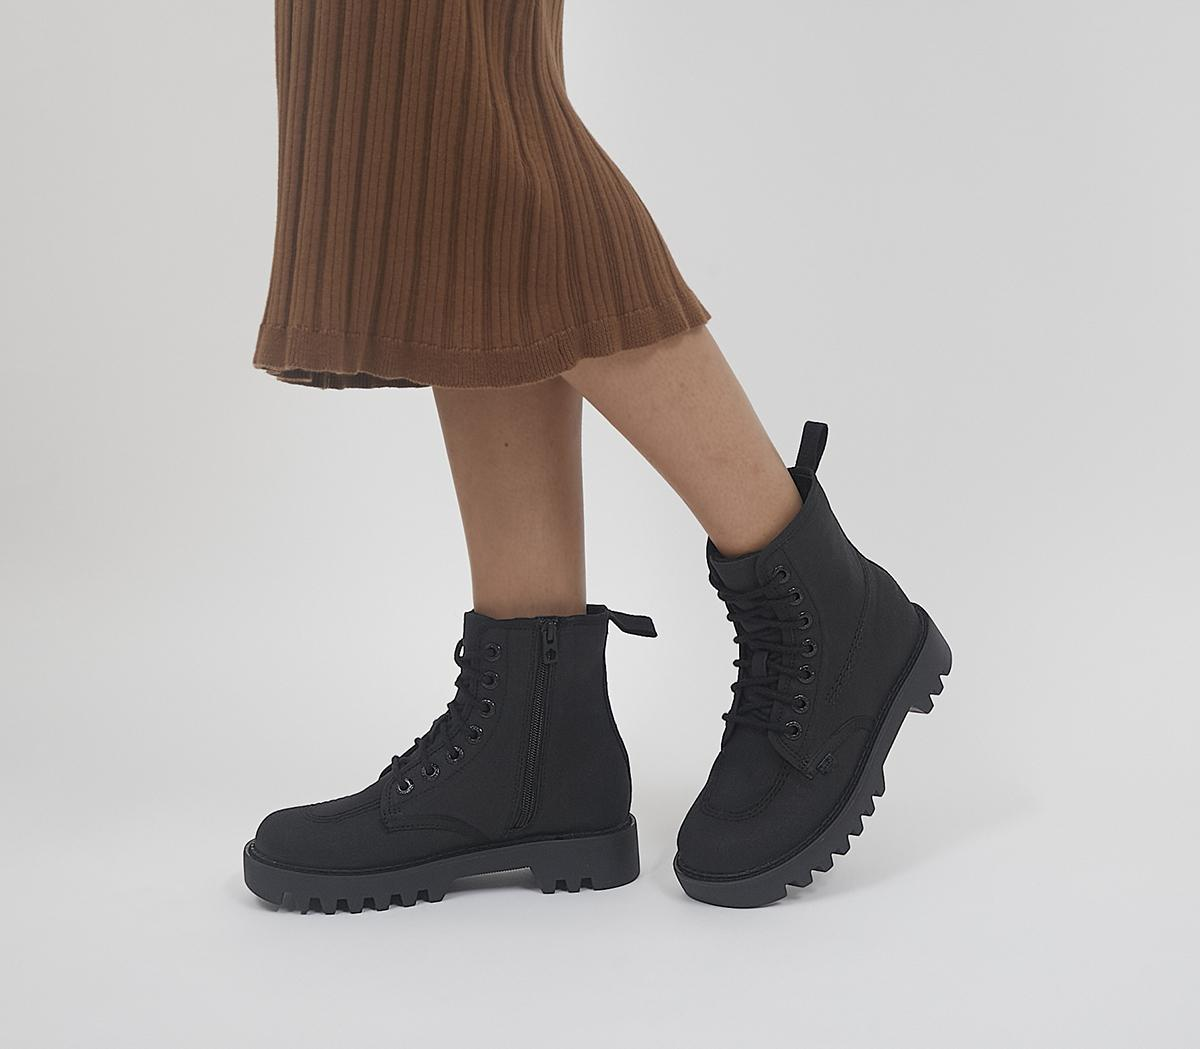 Kizziie Higher Text Boots